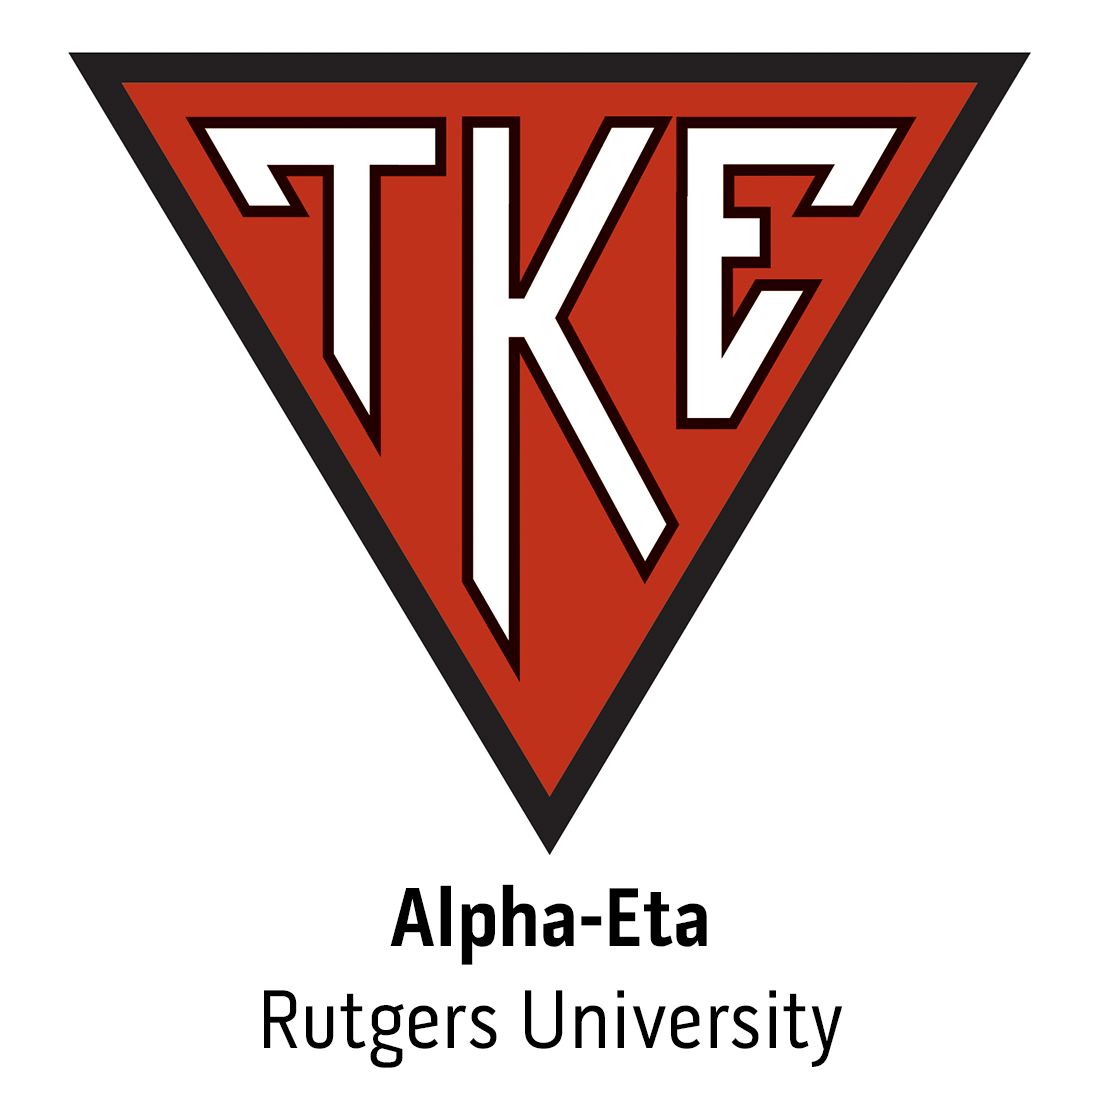 Alpha-Eta Colony at Rutgers University